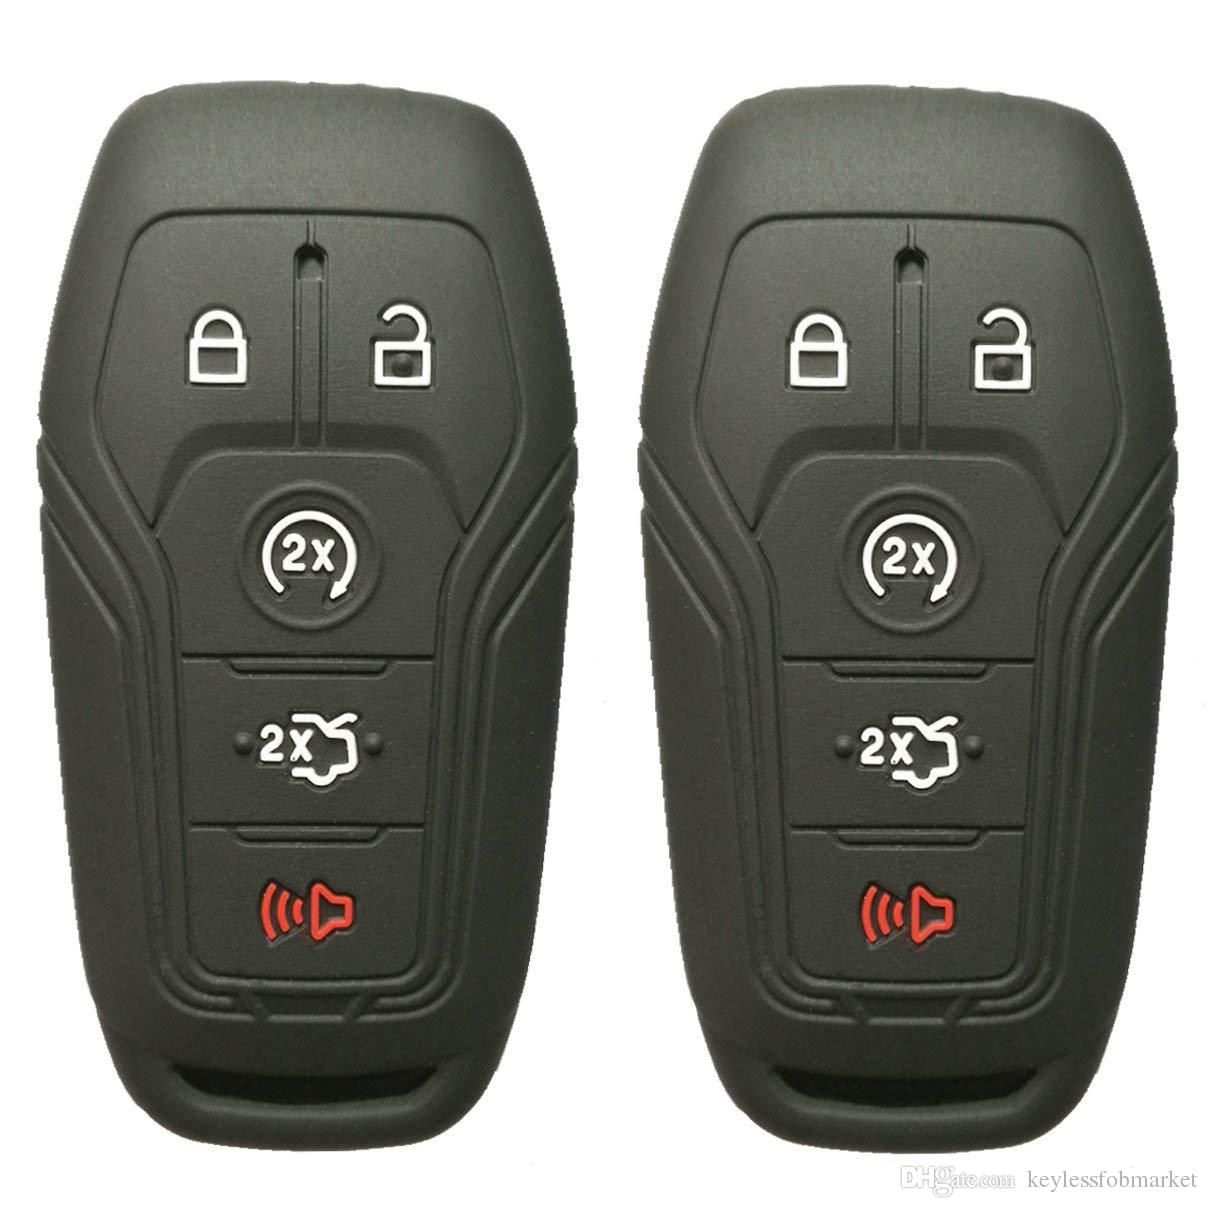 Protective Silicone Rubber Keyless Remote Fob Cover Case Jacket for GM Black